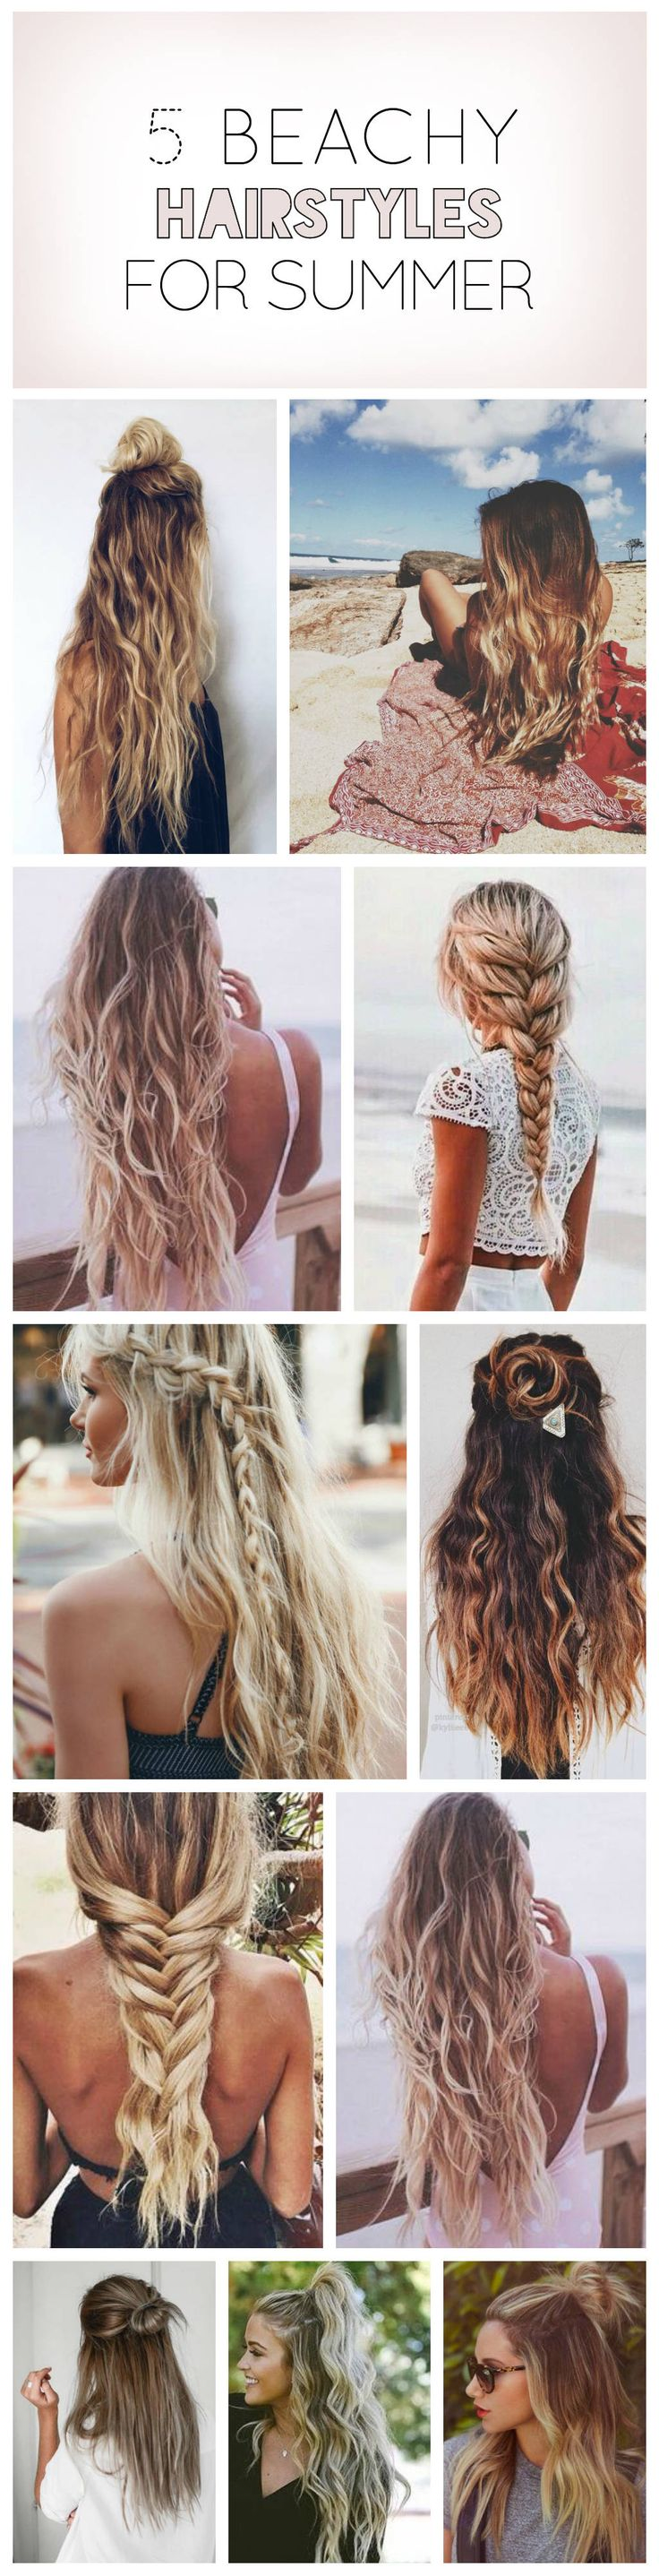 Pinterest Hairstyles Captivating 347 Best Hair Tutorials & Ideas Images On Pinterest  Hairstyle